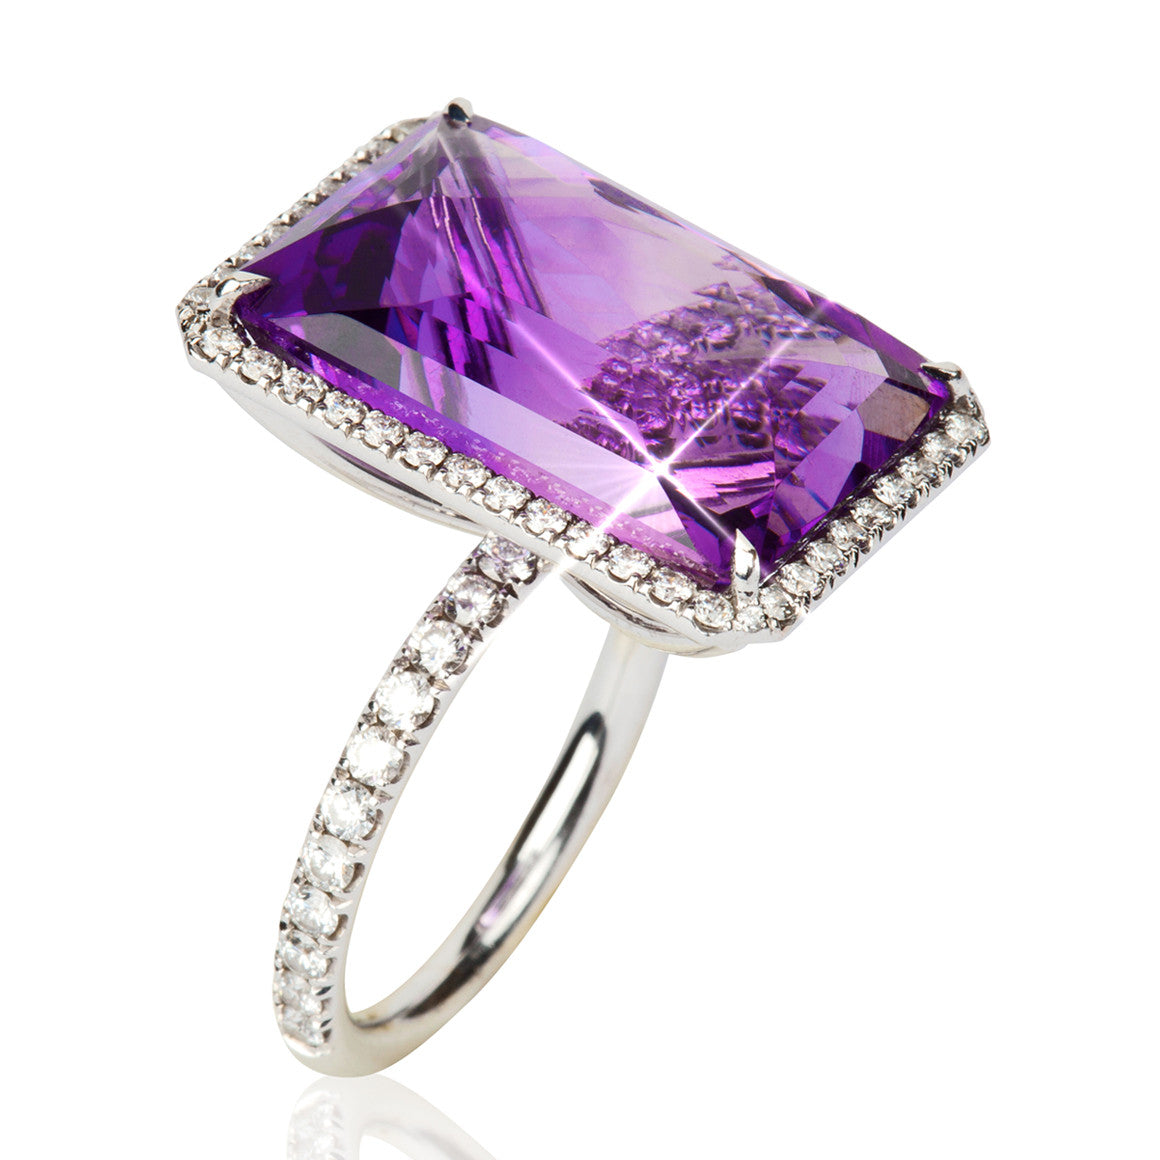 prima jewellery truth ring upscale the rings mappin crop how purple engagement editor birthstone false hard scale know bridal subsampling about guide webb amethyst